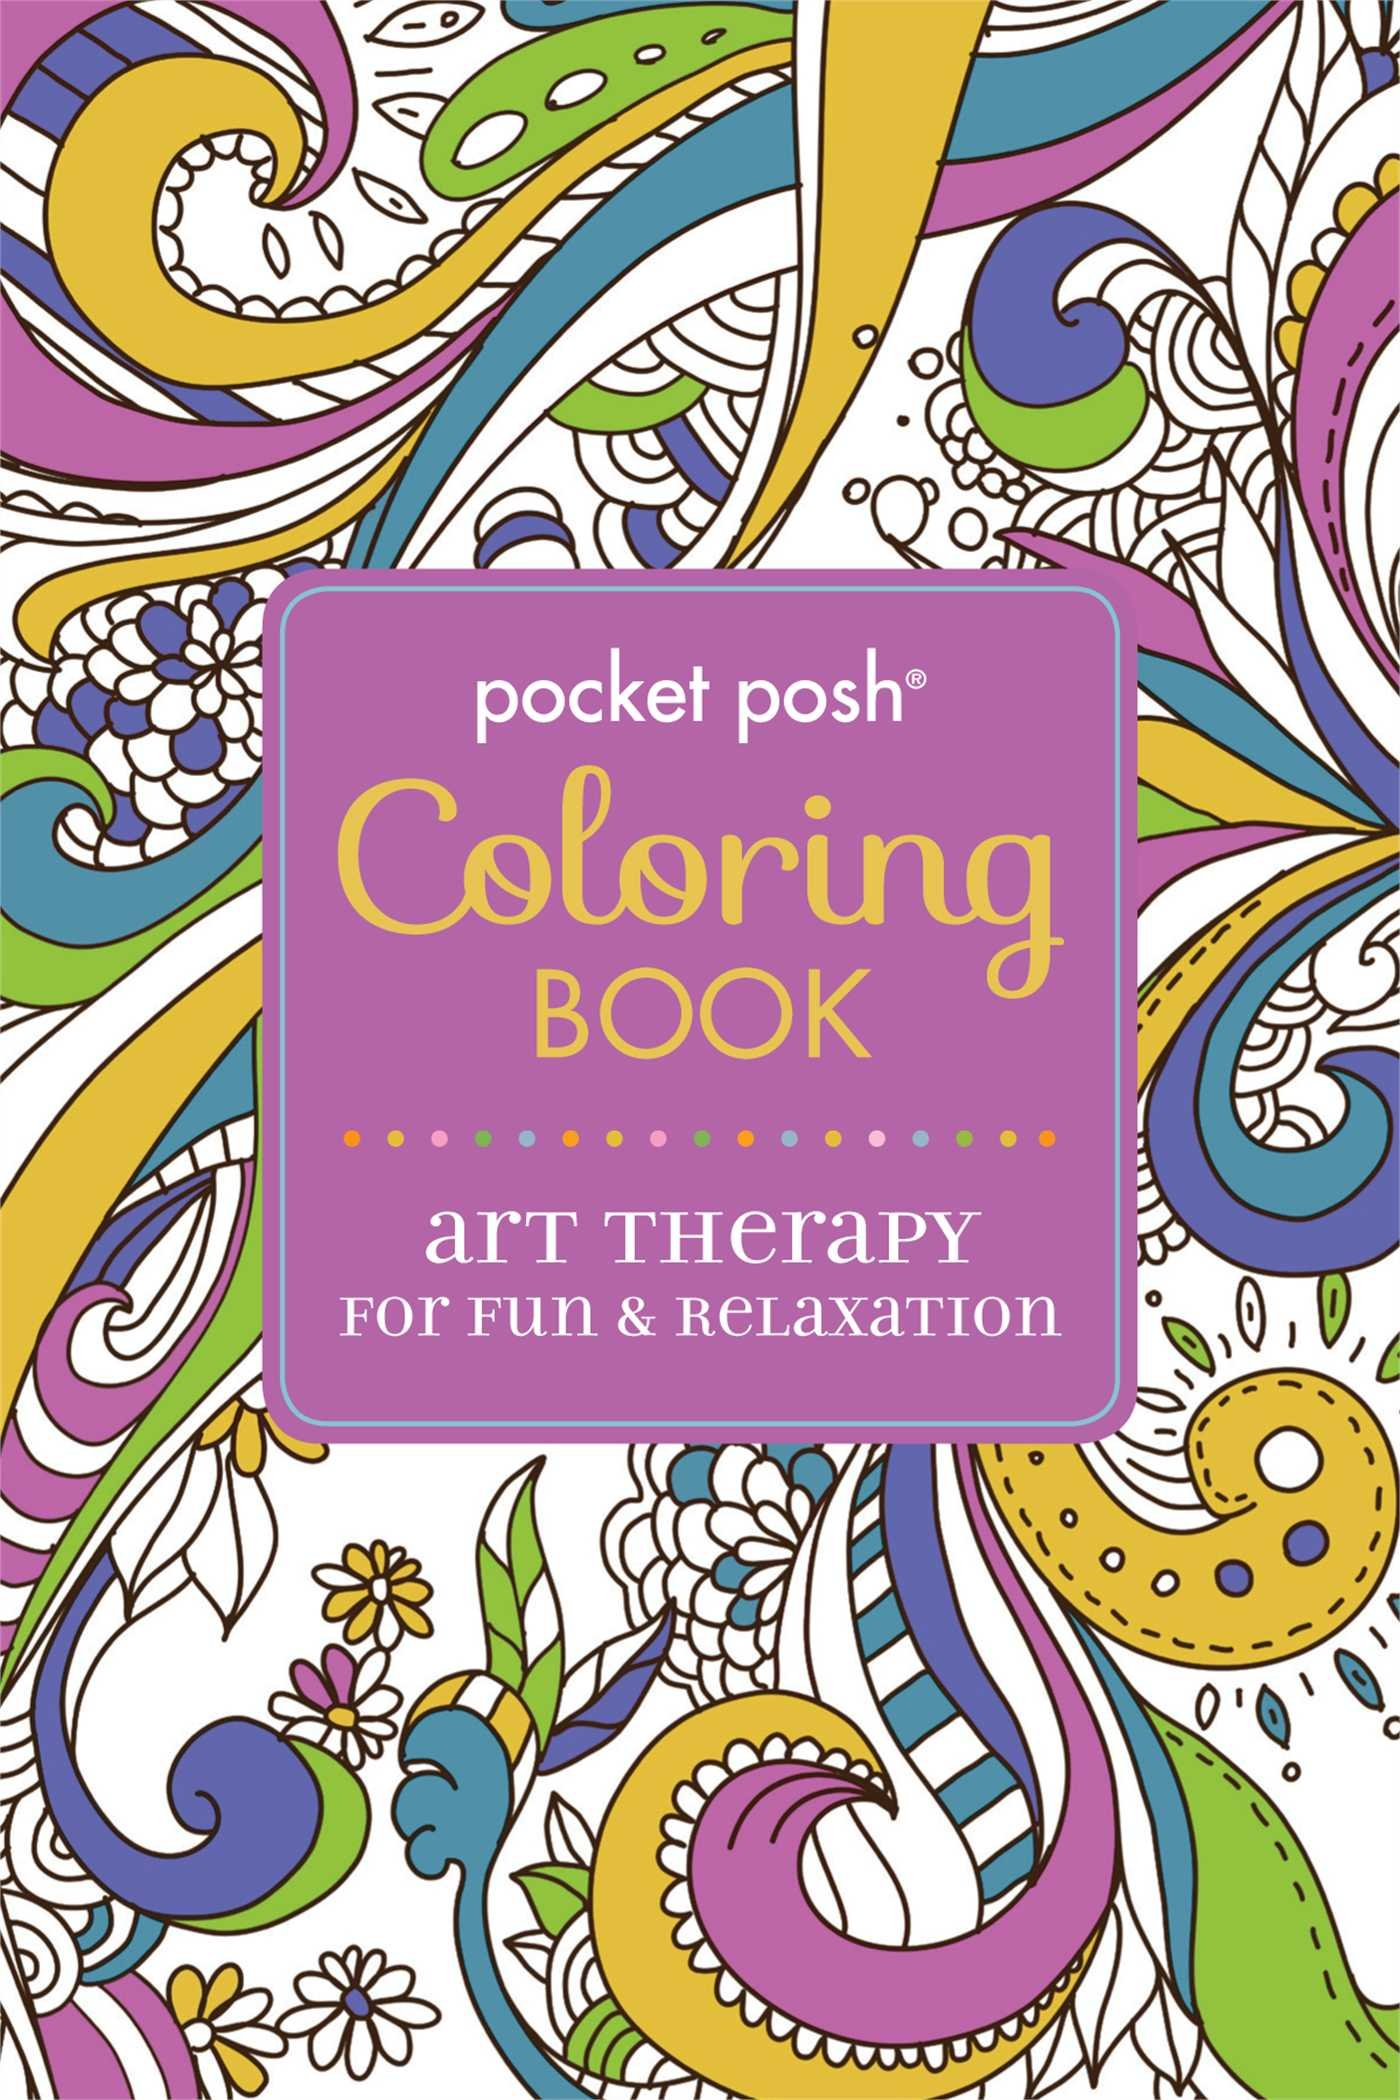 Art therapy coloring book michael omara - Posh Coloring Book Art Therapy For Fun Relaxation Amazon Co Uk Michael O Mara Books Limited 9781449458744 Books